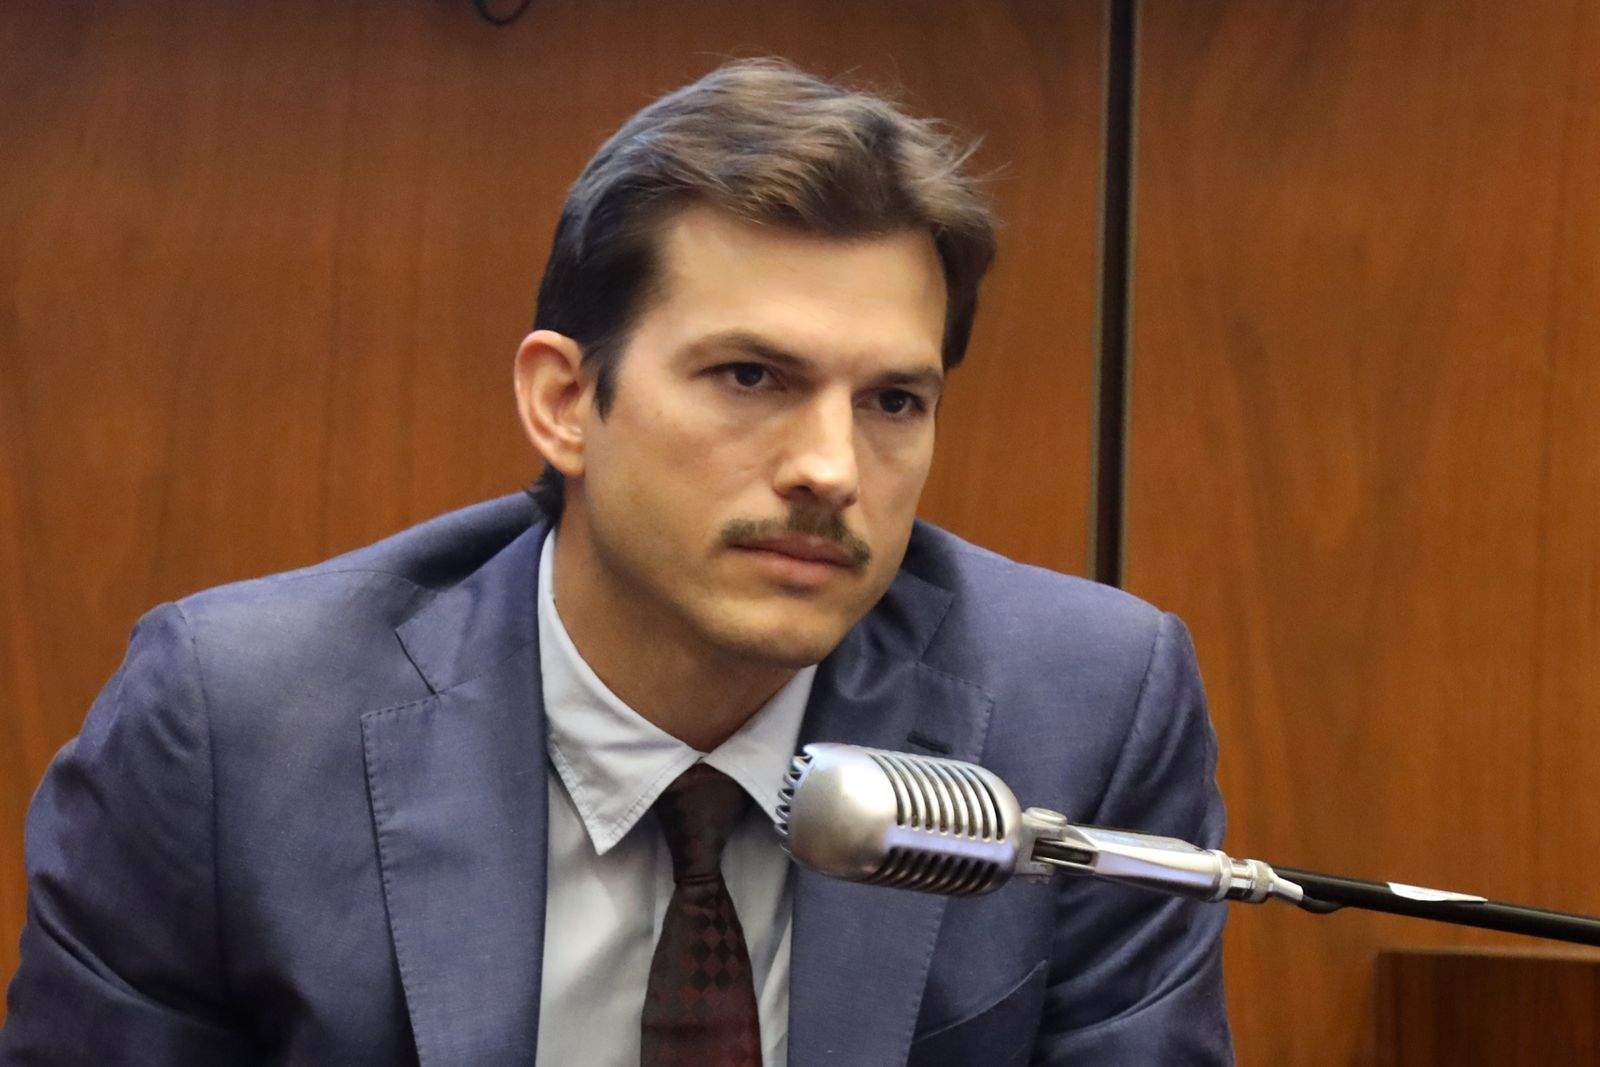 US-ASHTON-KUTCHER-TESTIFIES-IN-TRIAL-OF-SERIAL-KILLER-MICHAEL-GA